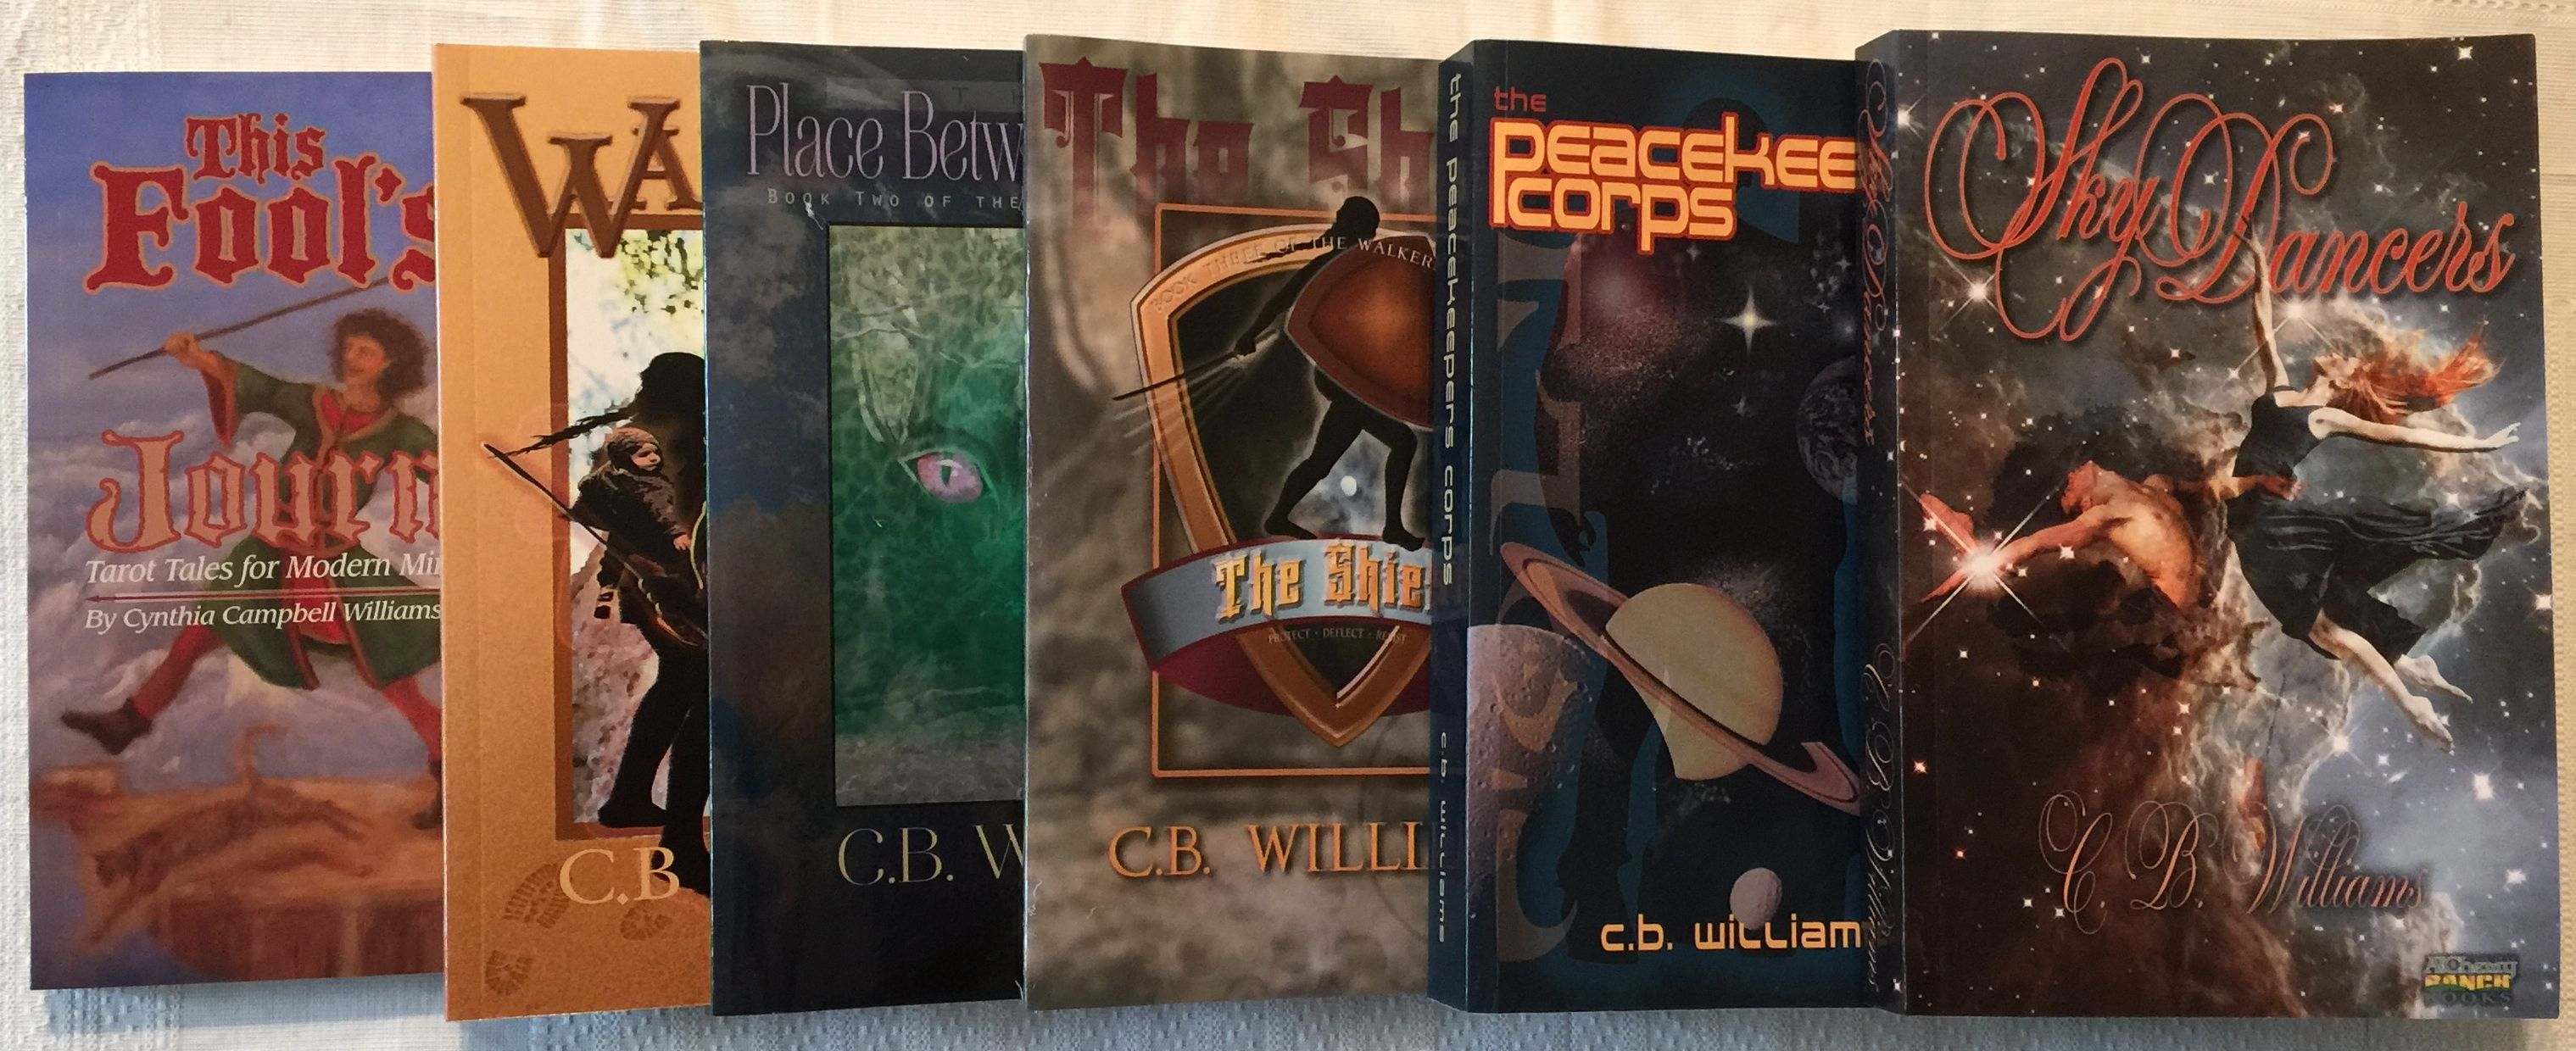 CB Williams' Book covers